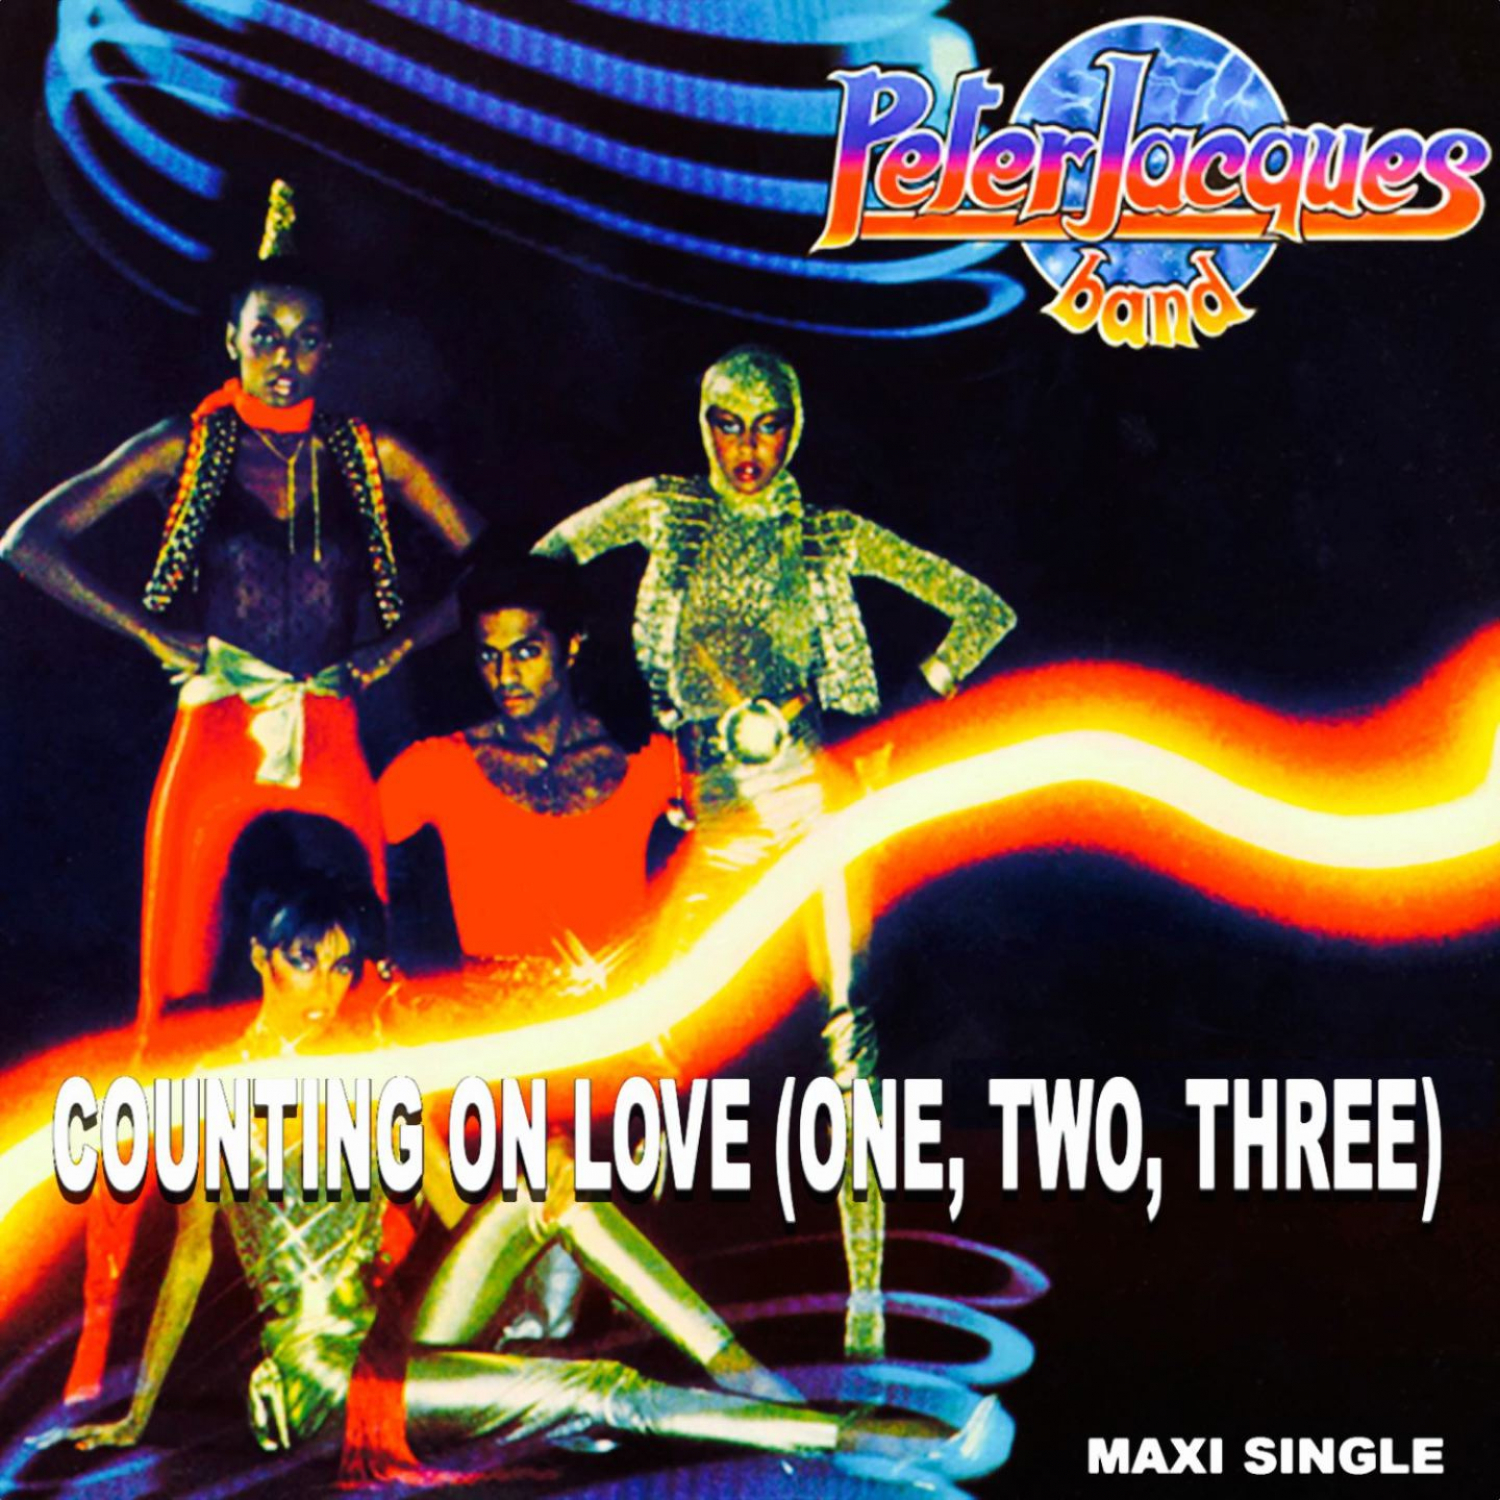 Peter Jacques Band - Counting on Love (One Two Three) (Extended Version)